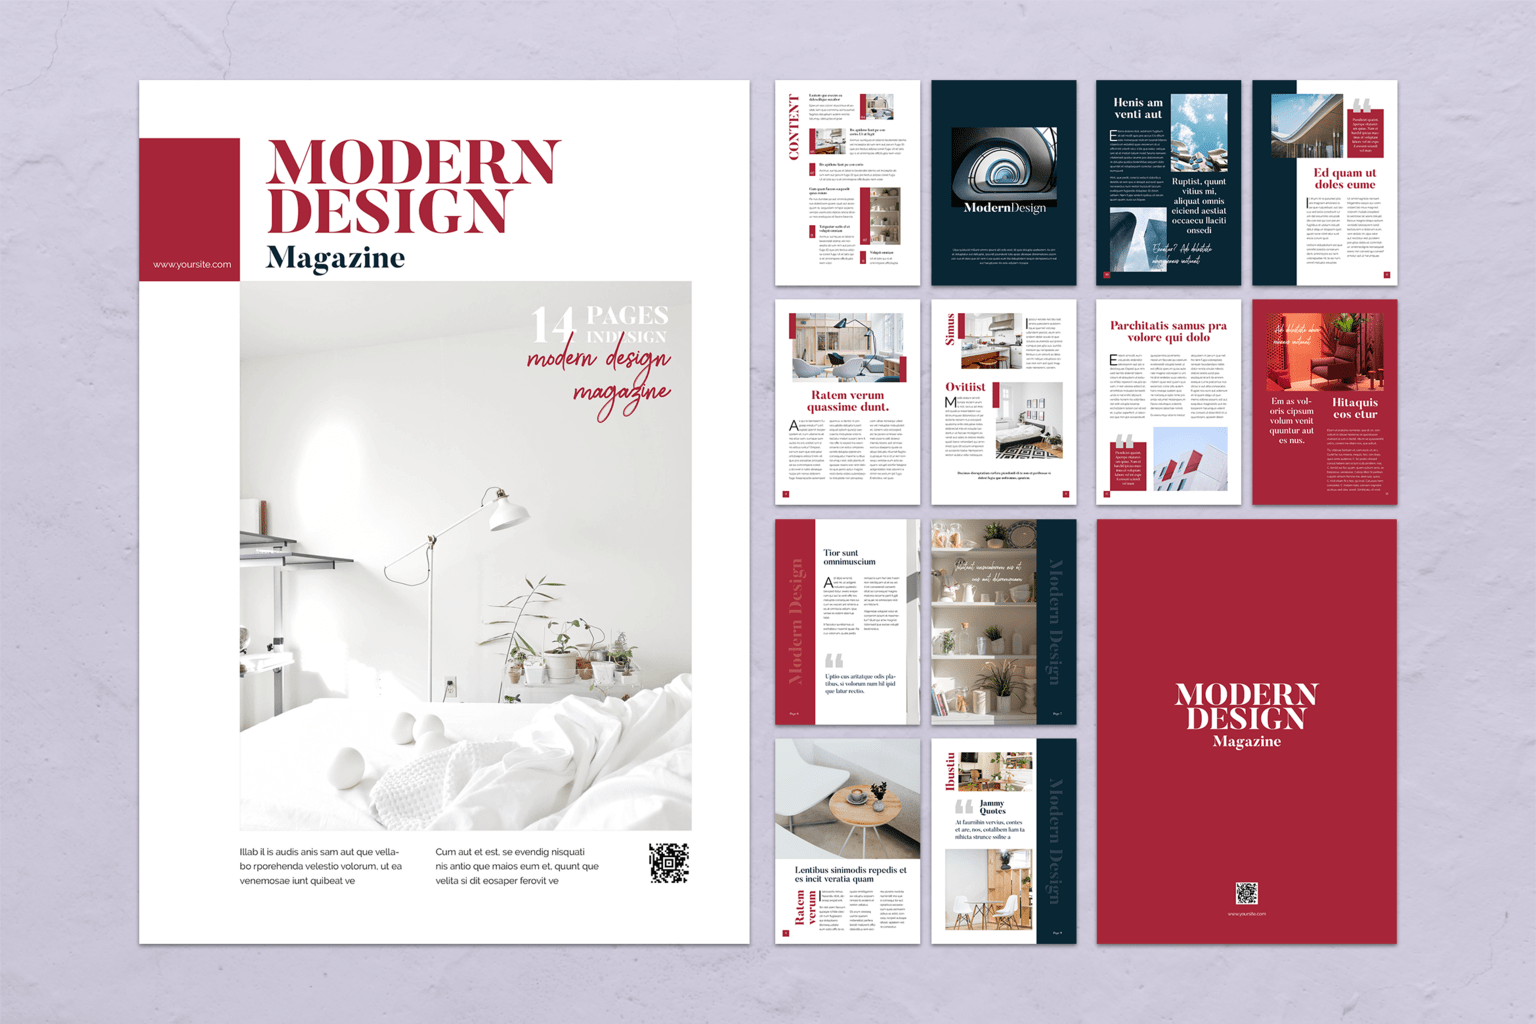 7 amazing tips to improve your magazine layout design 3